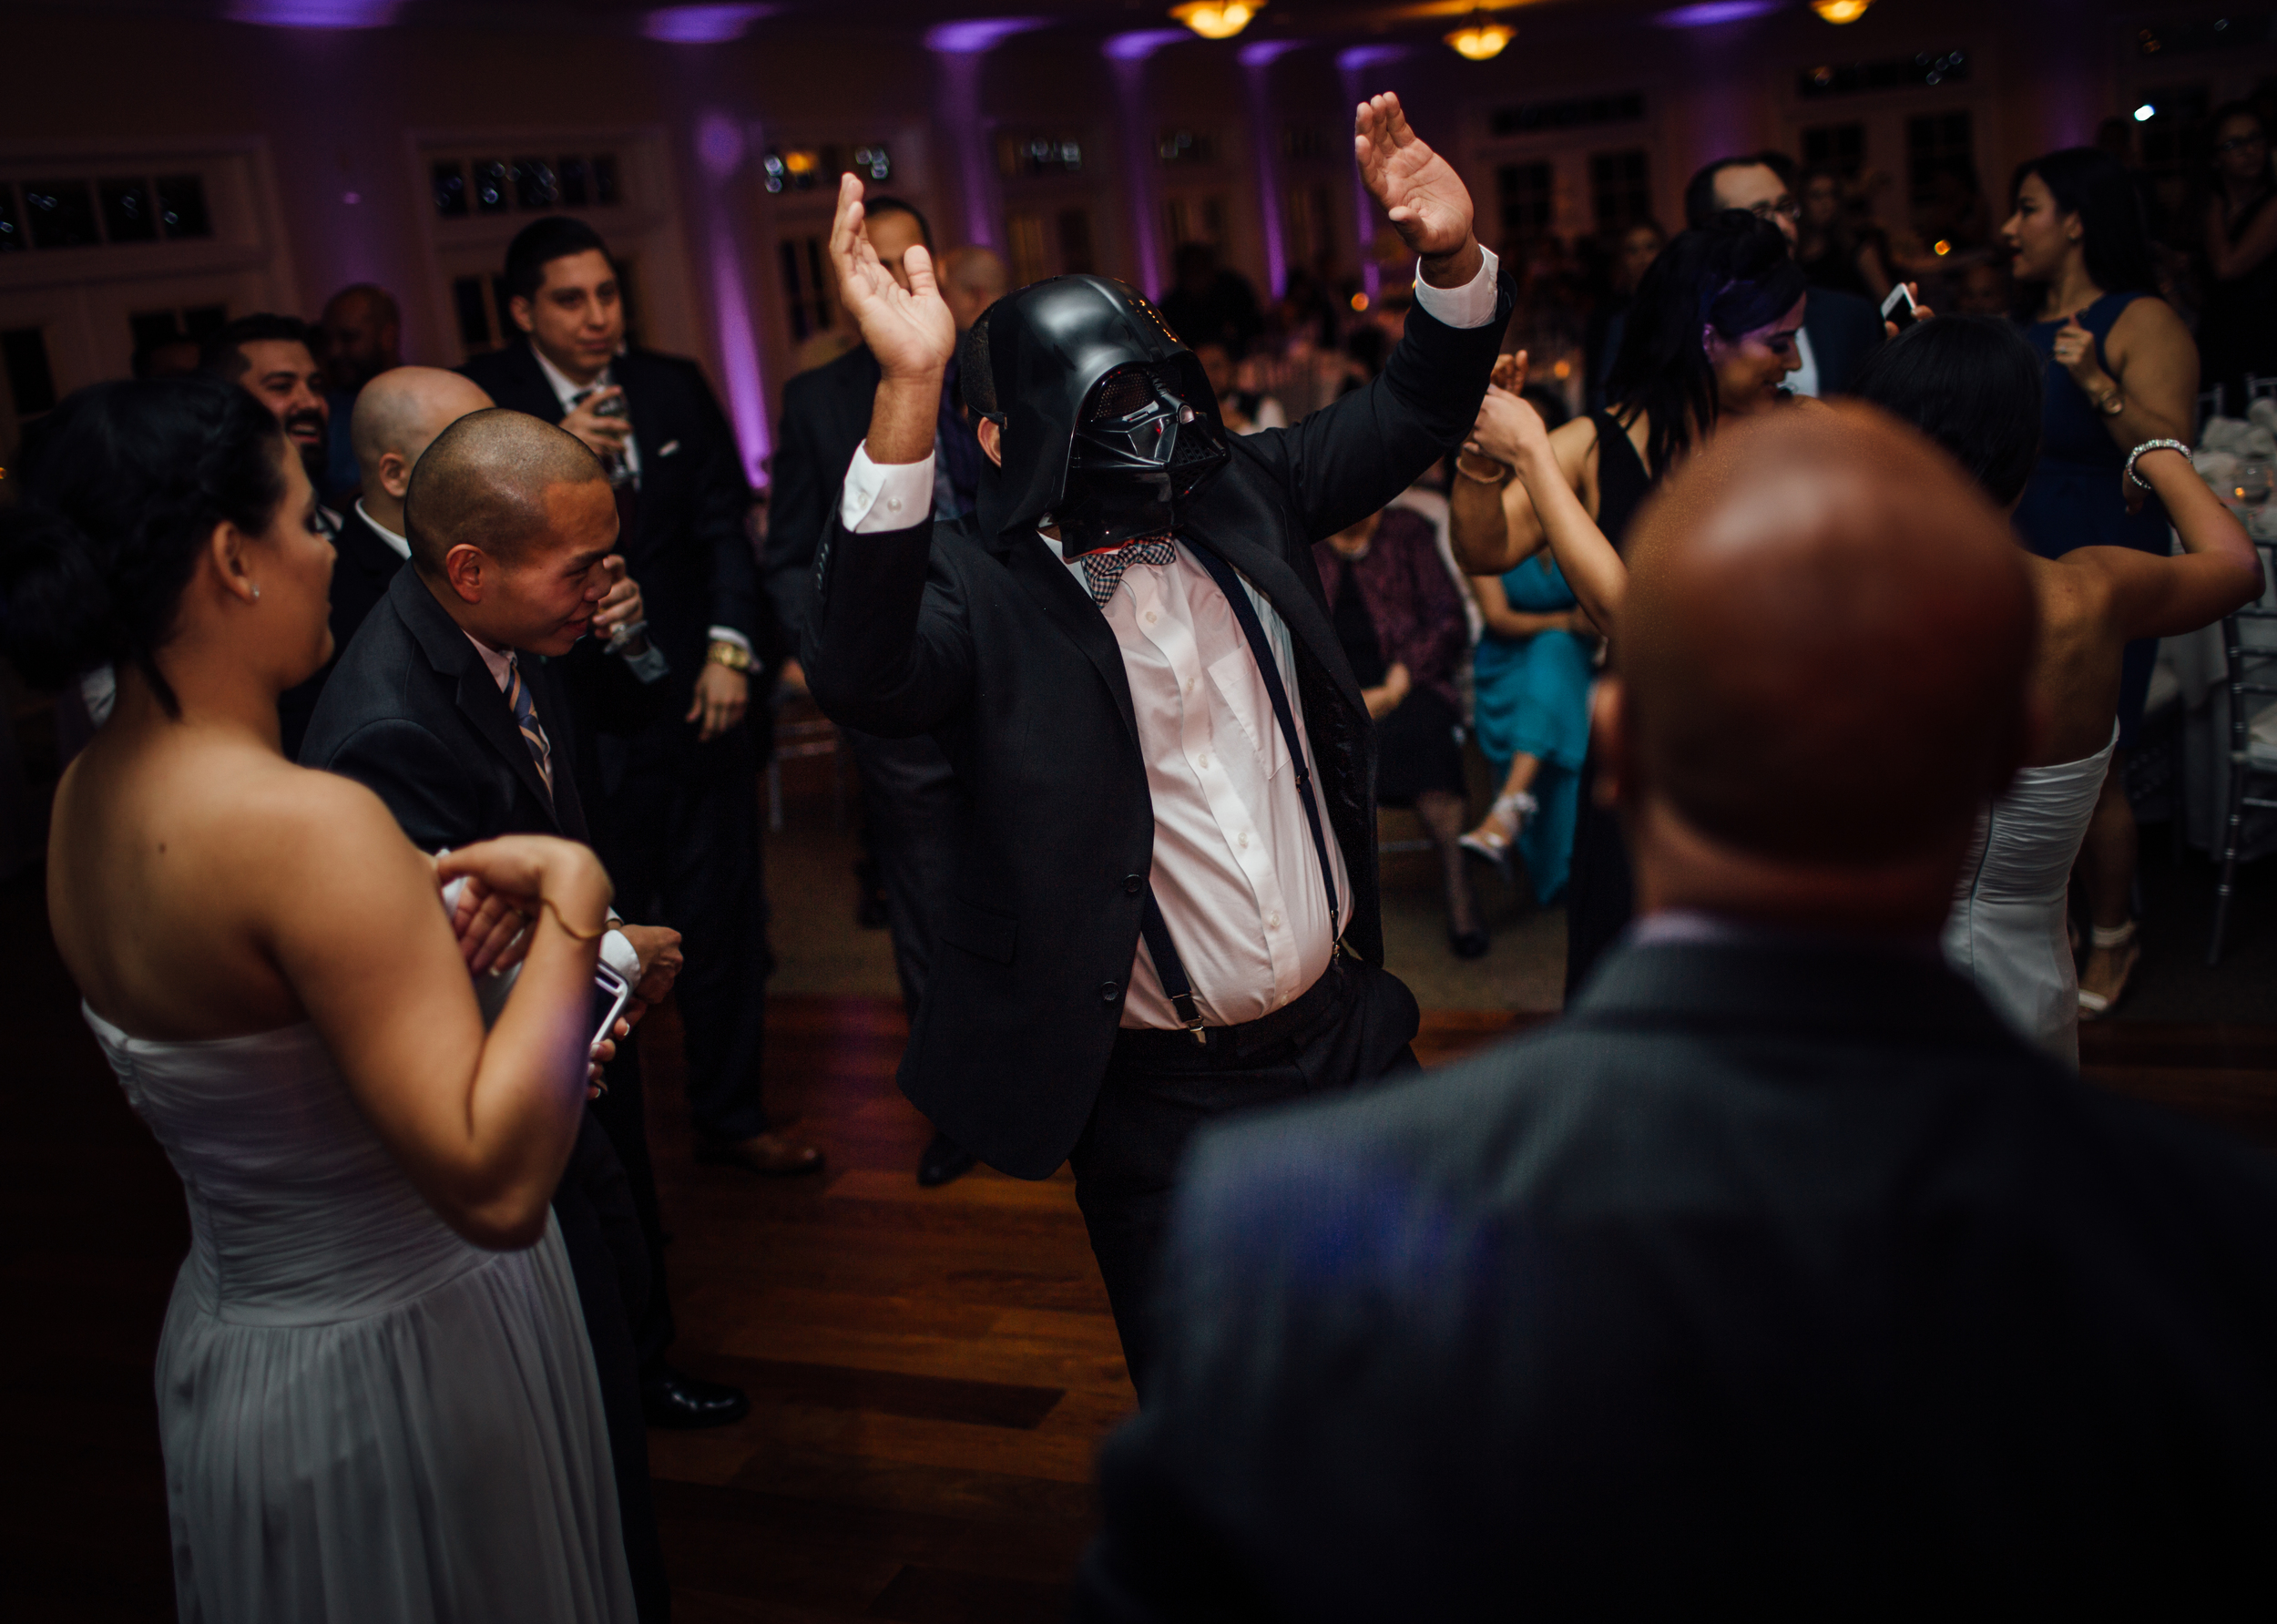 darth vader dancing at wedding | vanessaboy.com